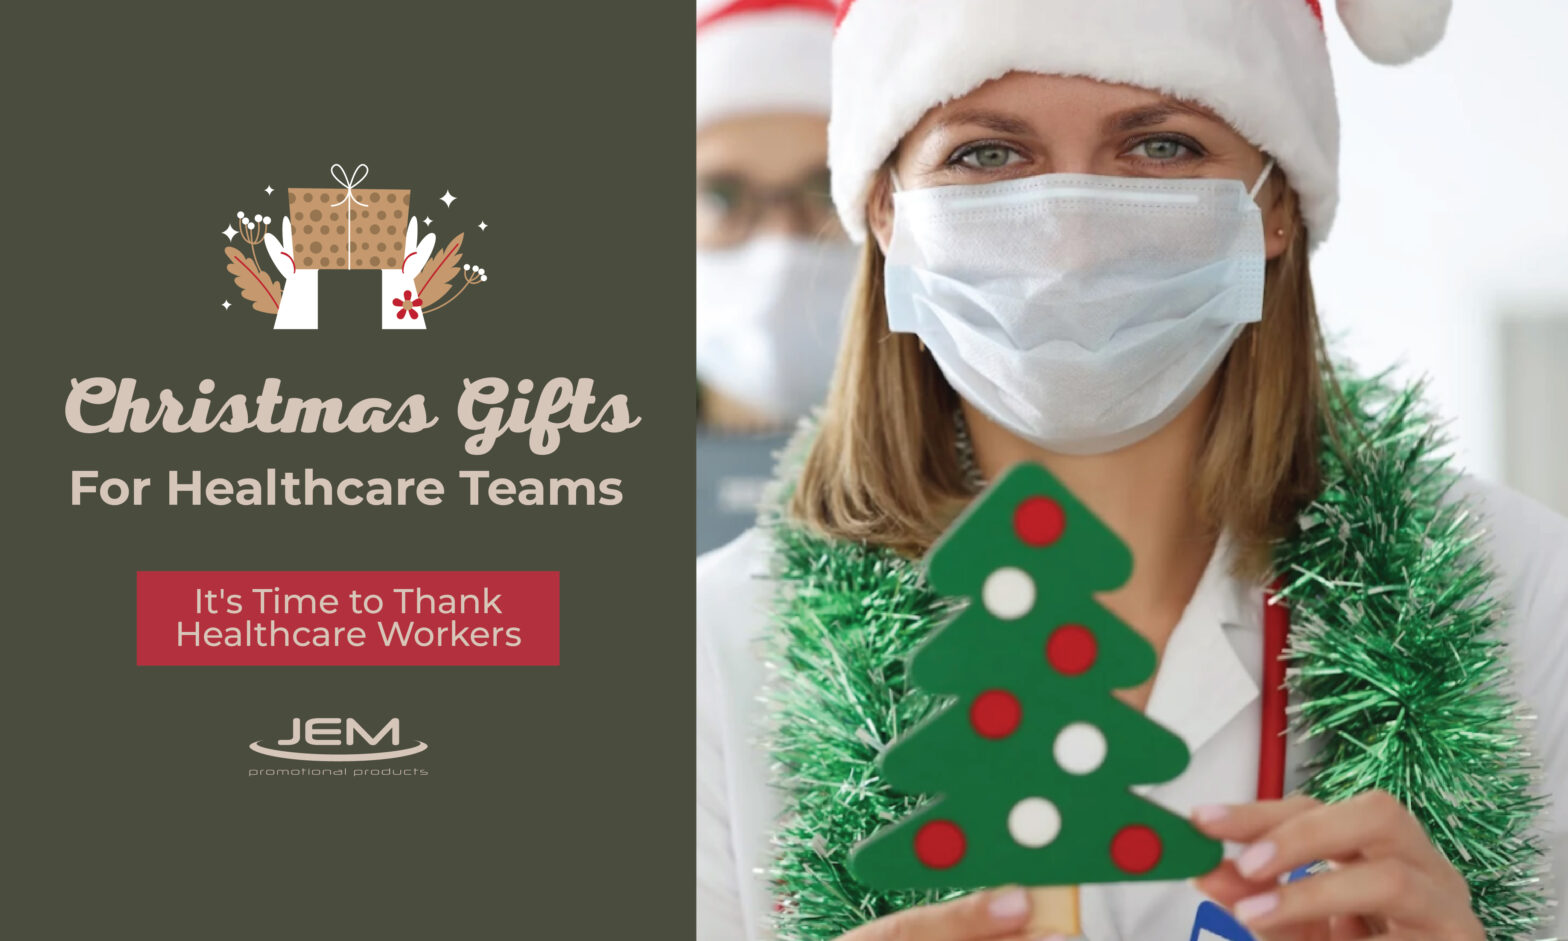 CHRISTMAS GIFTS FOR HEALTHCARE TEAMS